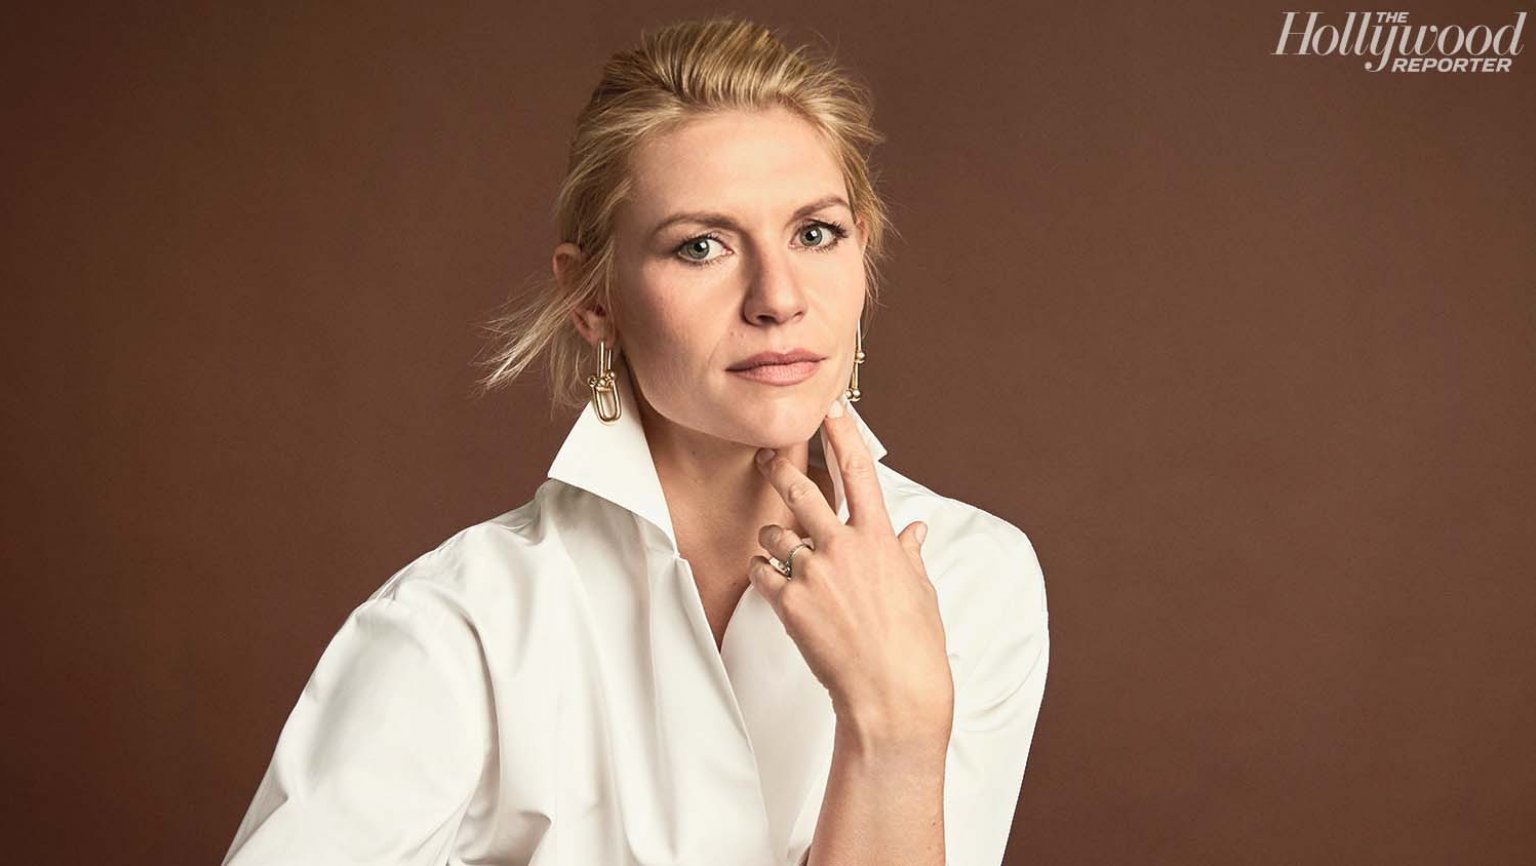 Hollywood Reporter, Claire Danes